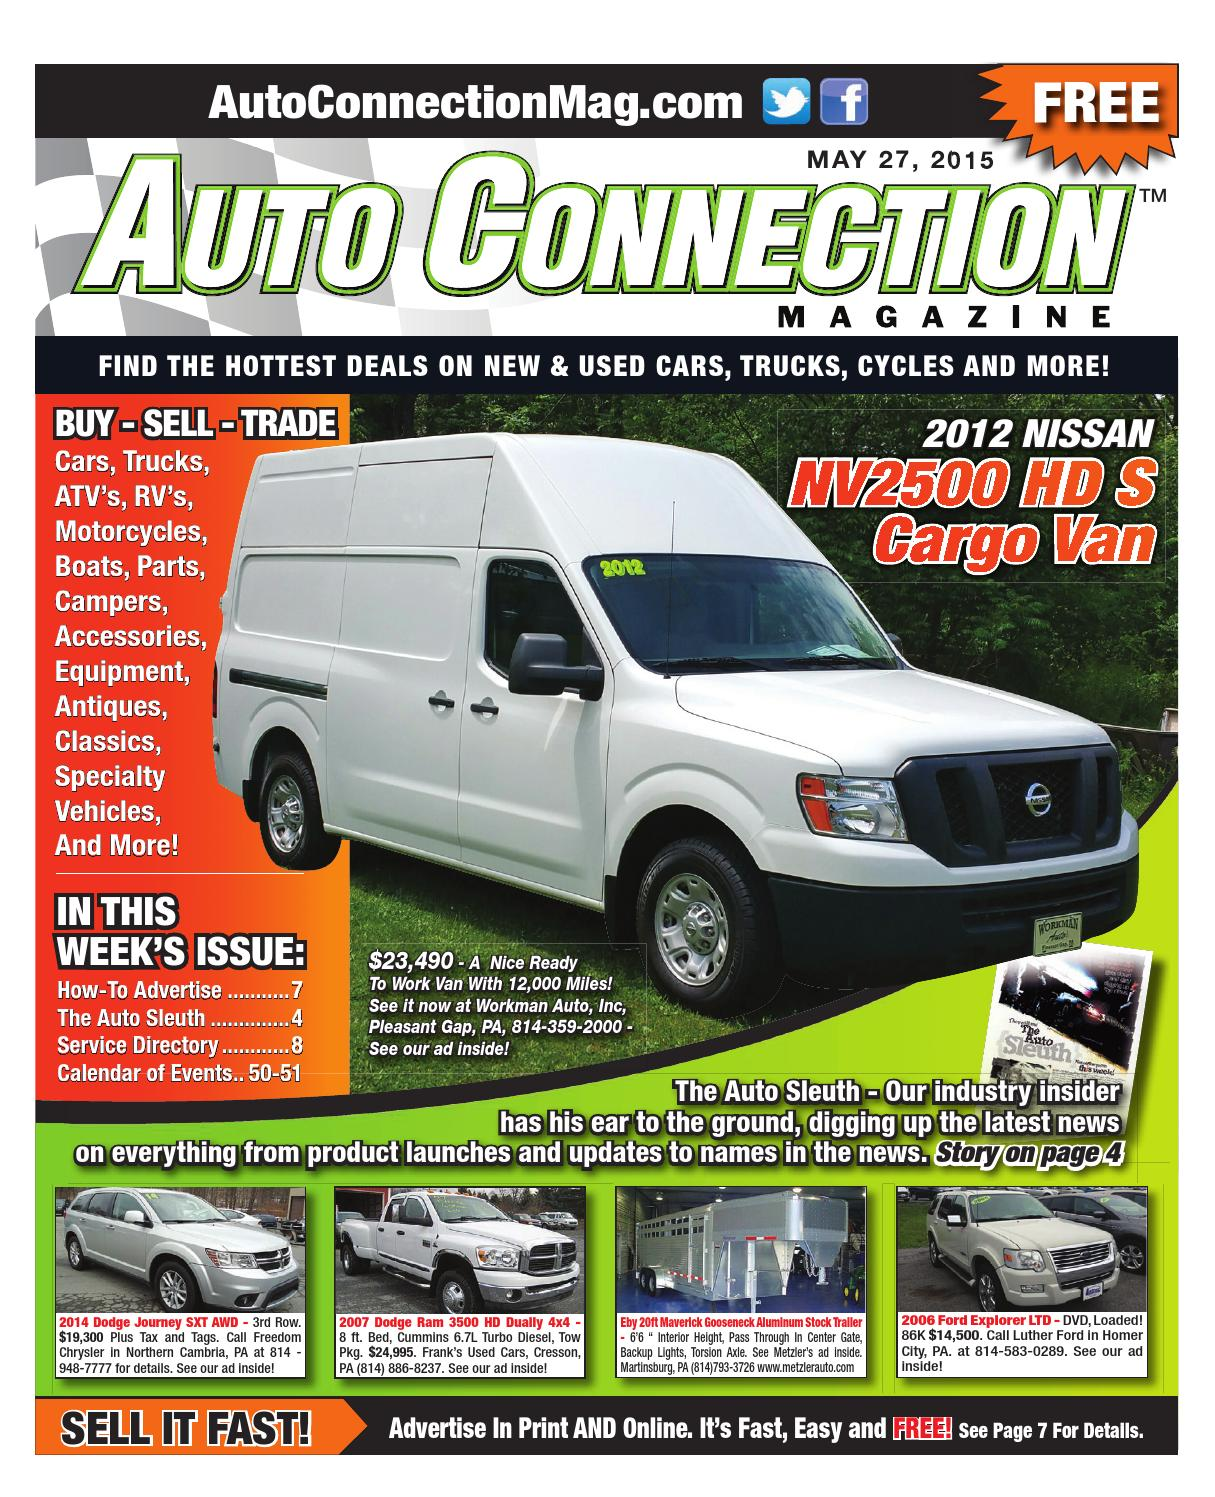 05 27 15 Auto Connection Magazine By Issuu 2016 Kia Sorento Hitches Wiring On Soul Tow Hitch Location